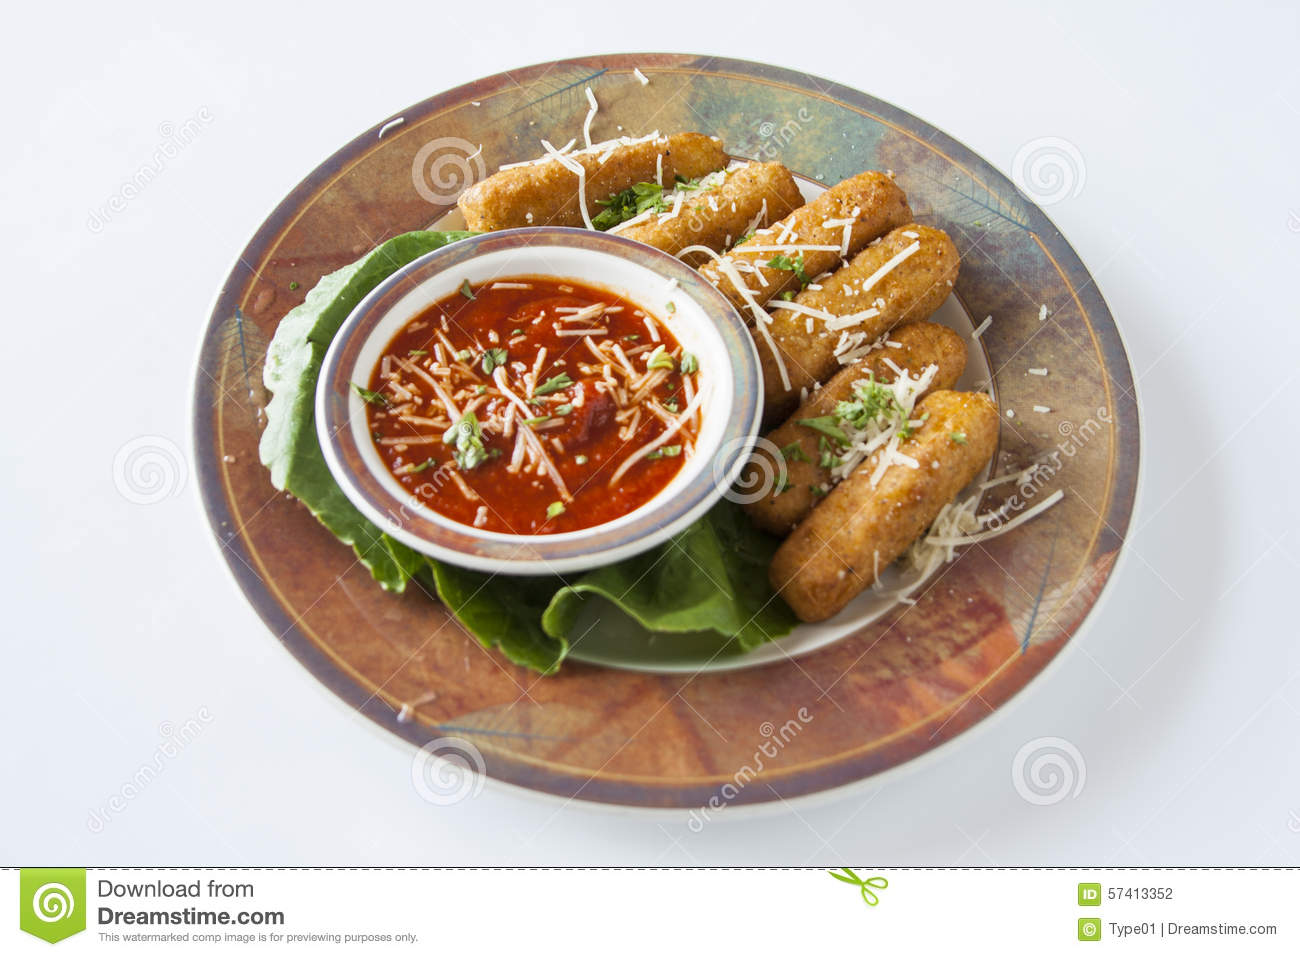 how to make cheese stick sauce